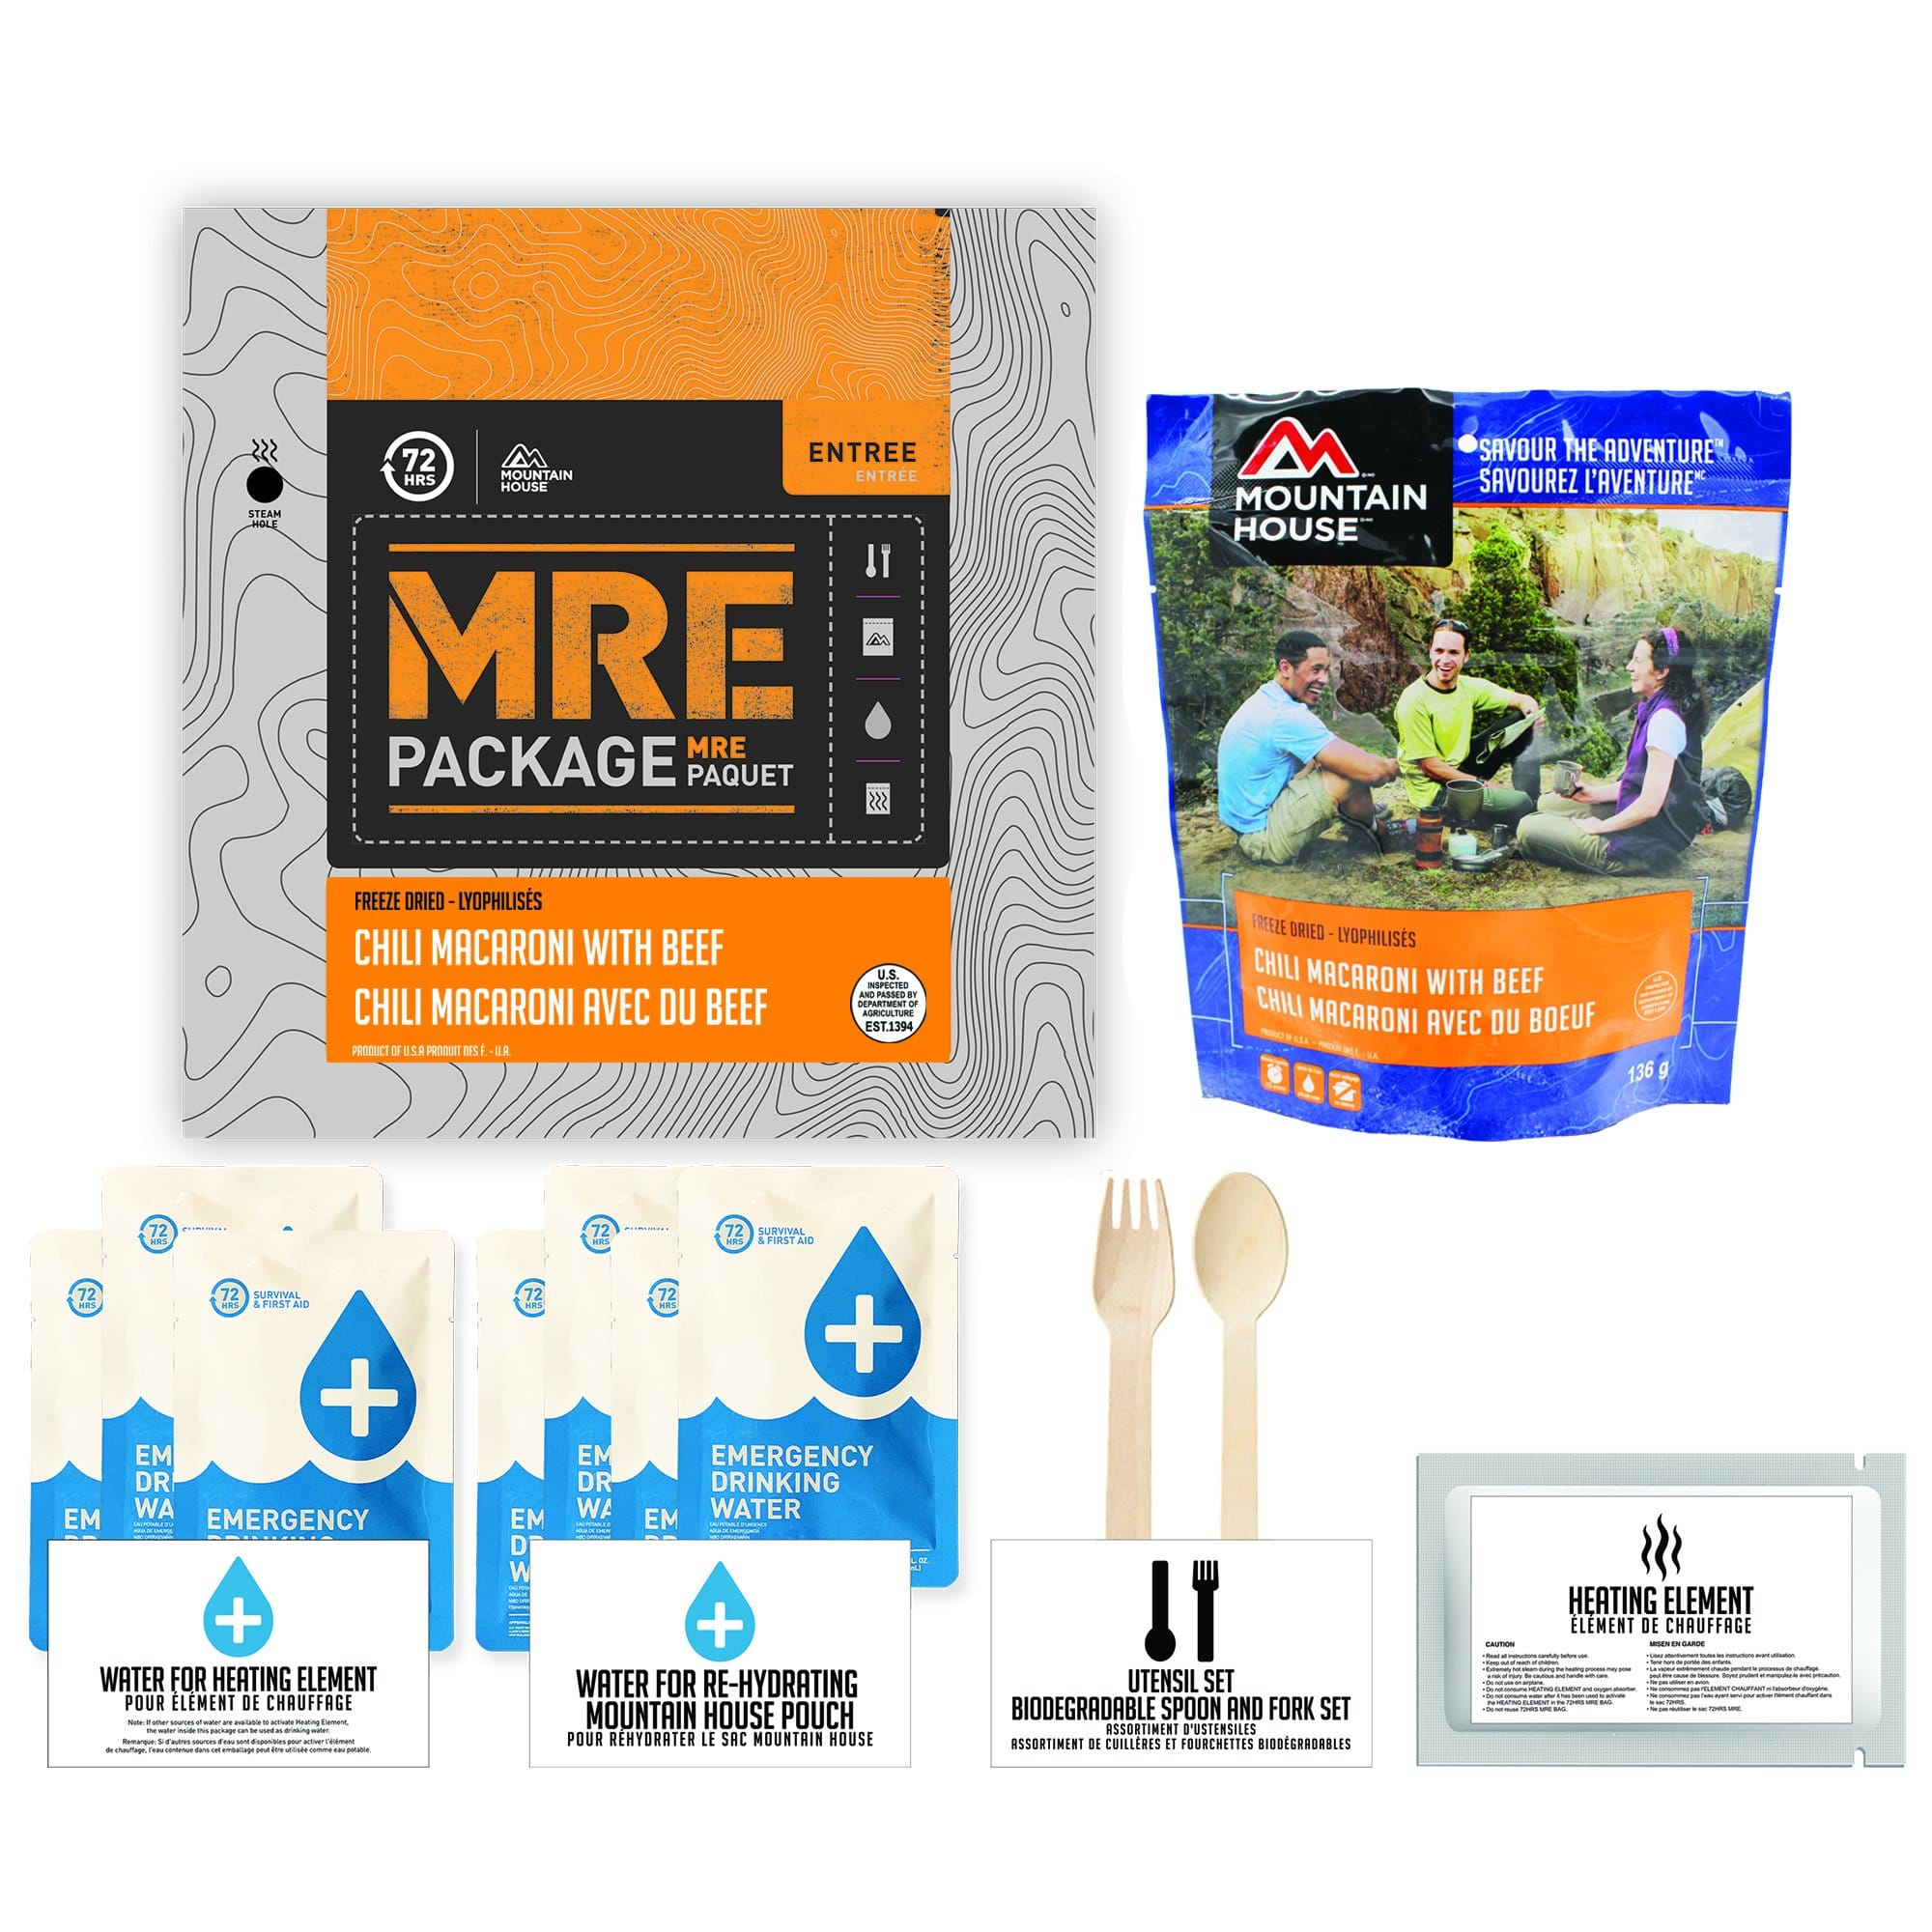 72 HOURS MRE Package Mountain House Chili Mac with Beef Pouch - Emergency Food Pack